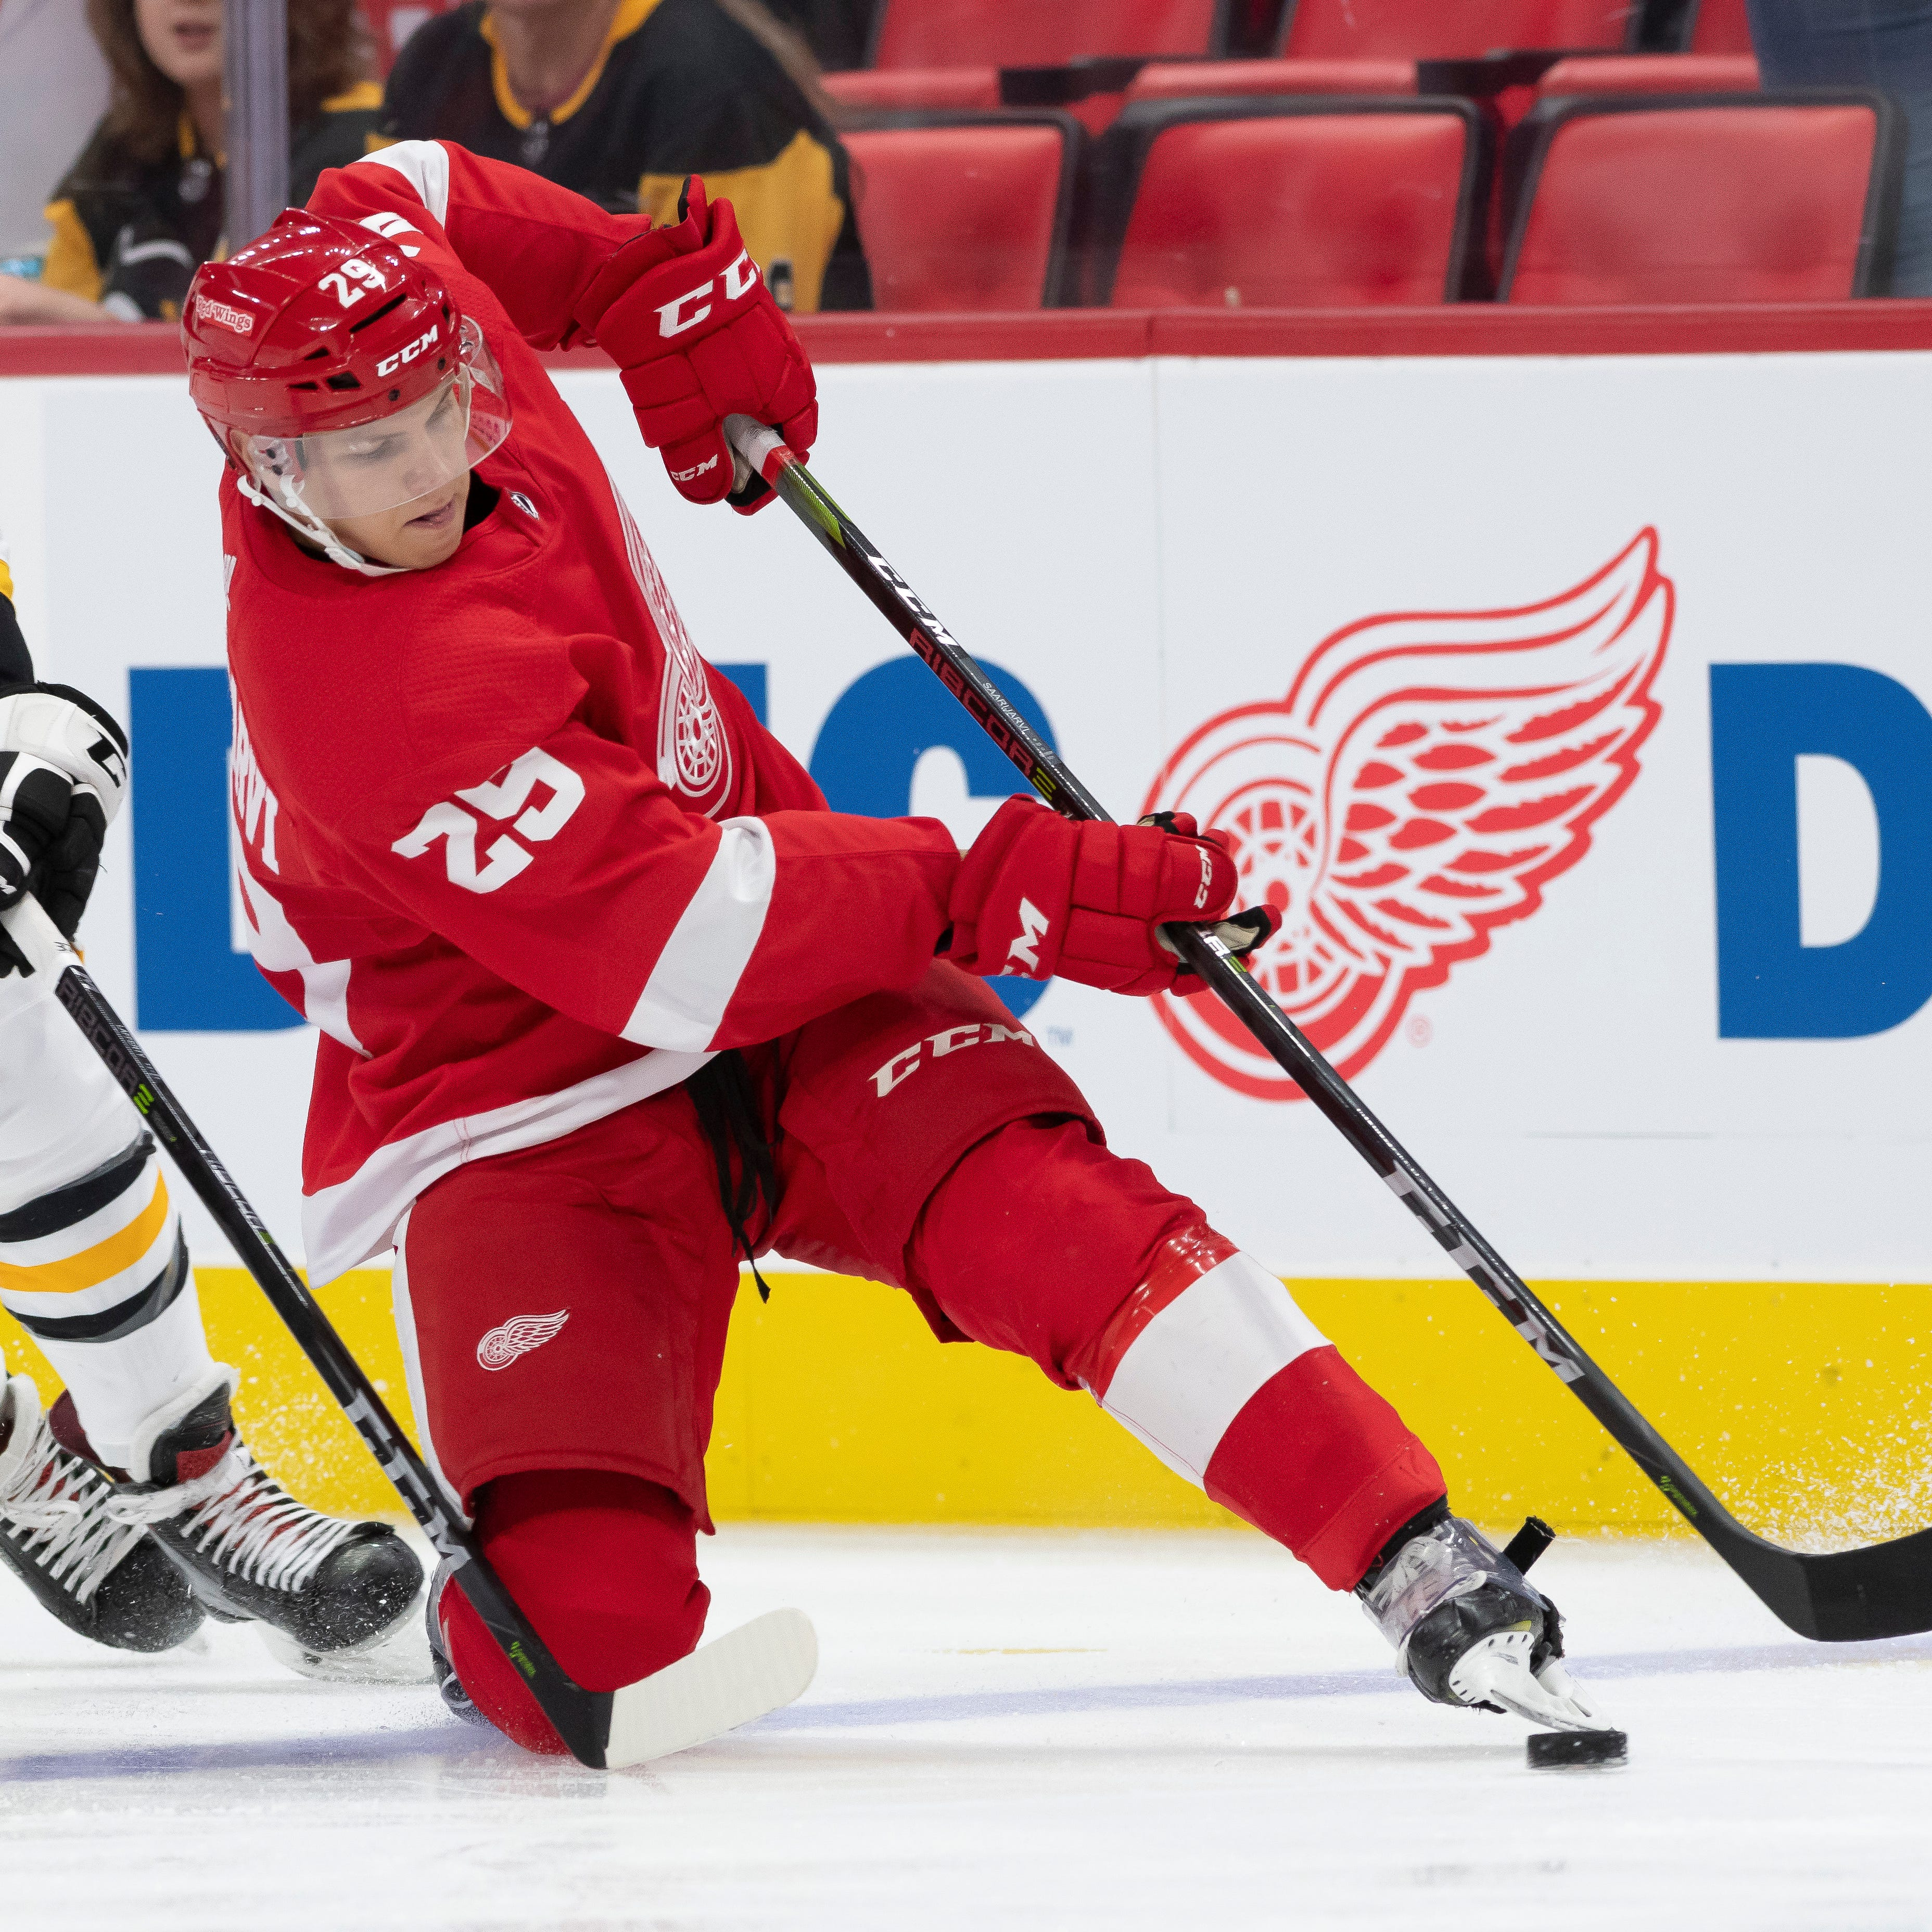 Rasmussen scores in OT to give Wings 3-2 victory over Pittsburgh